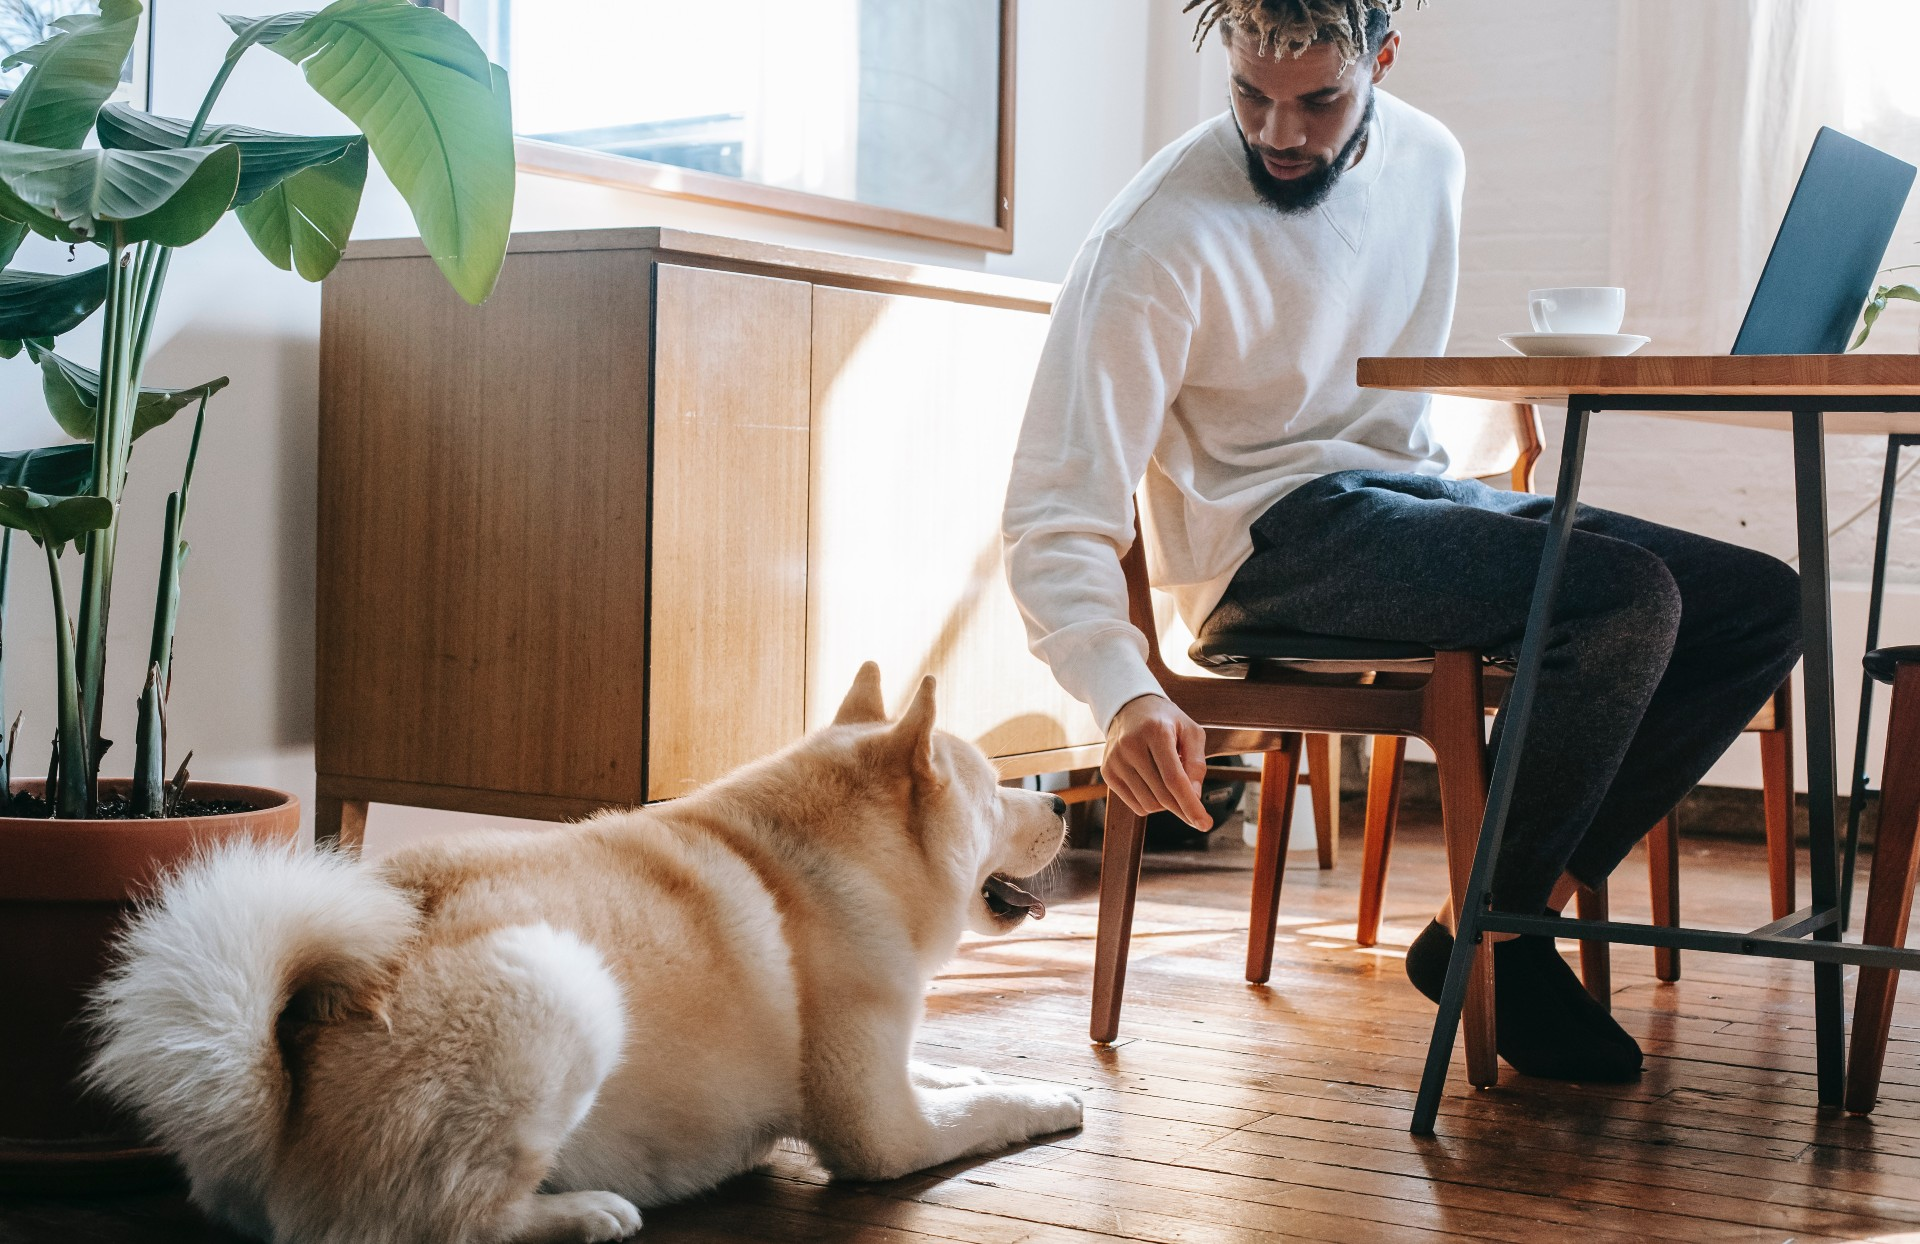 People are forking out to boost their pets' wellbeing